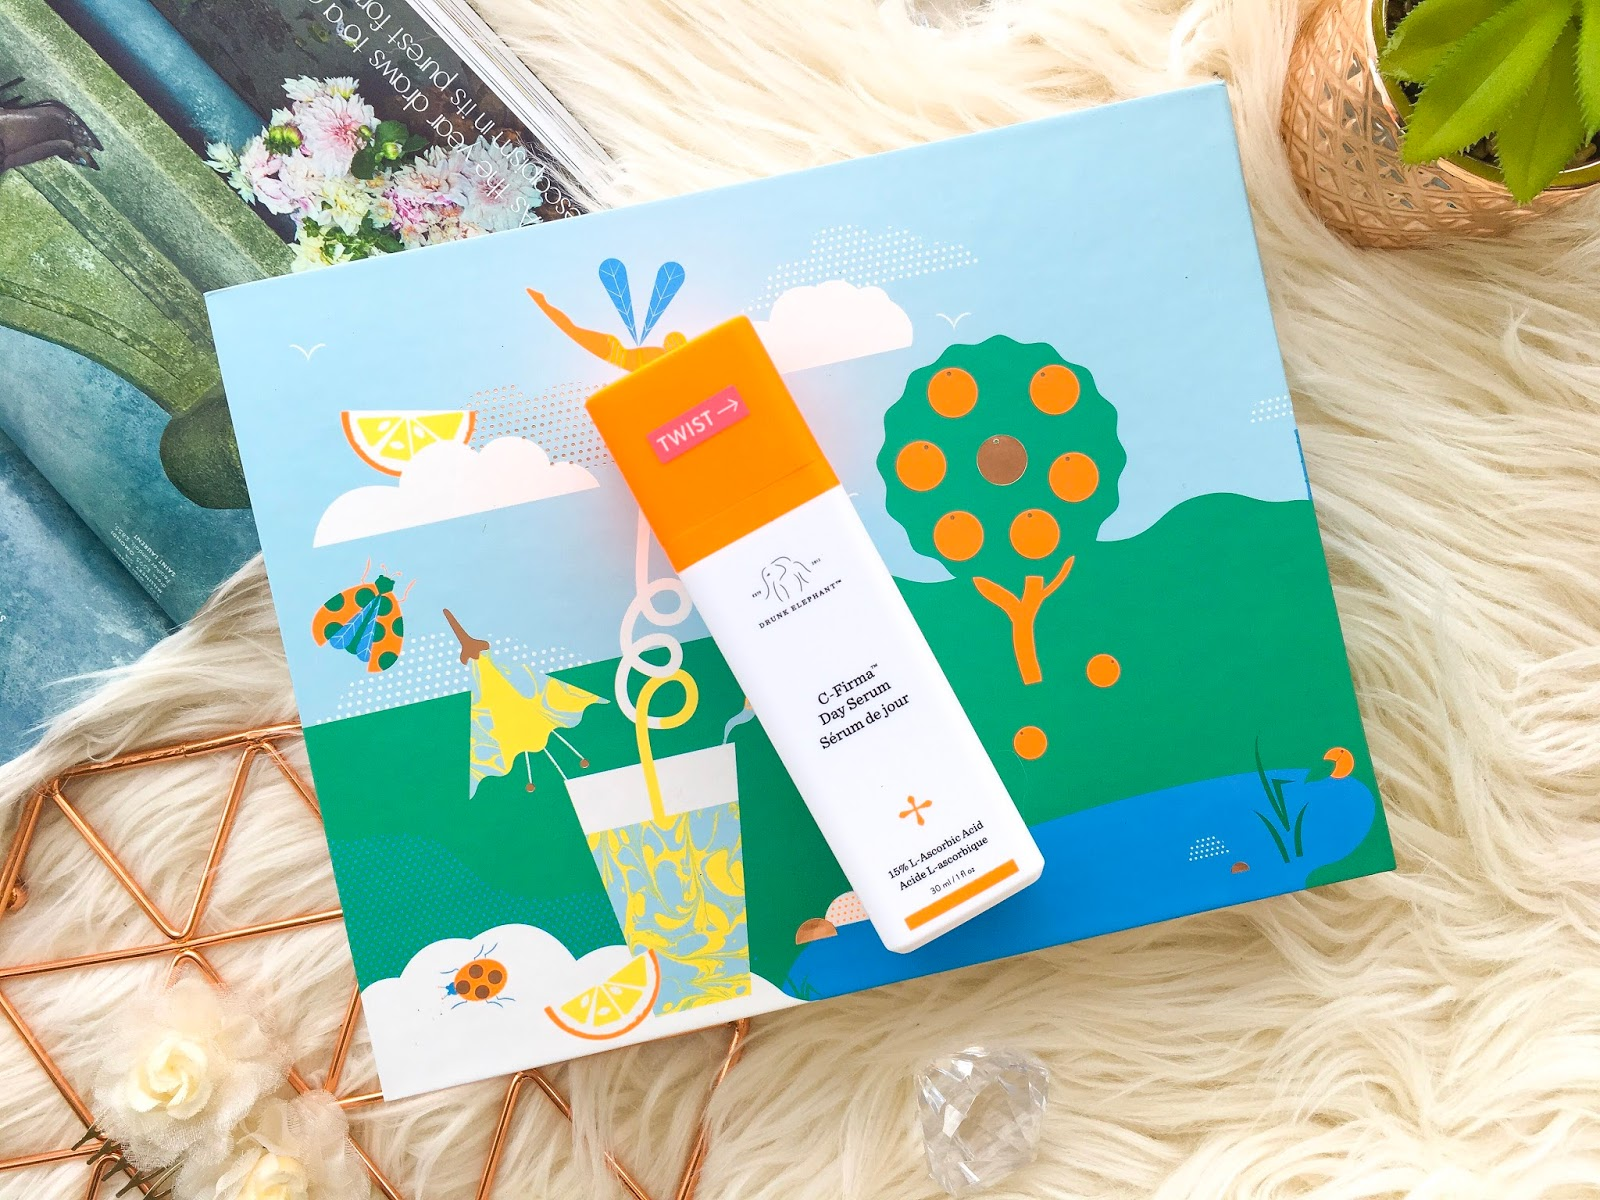 drunk elephant c-firma day serum, drunk elephant haul, drunk elephant come c about me set, drunk elephant c firma review, best vitamin c serum